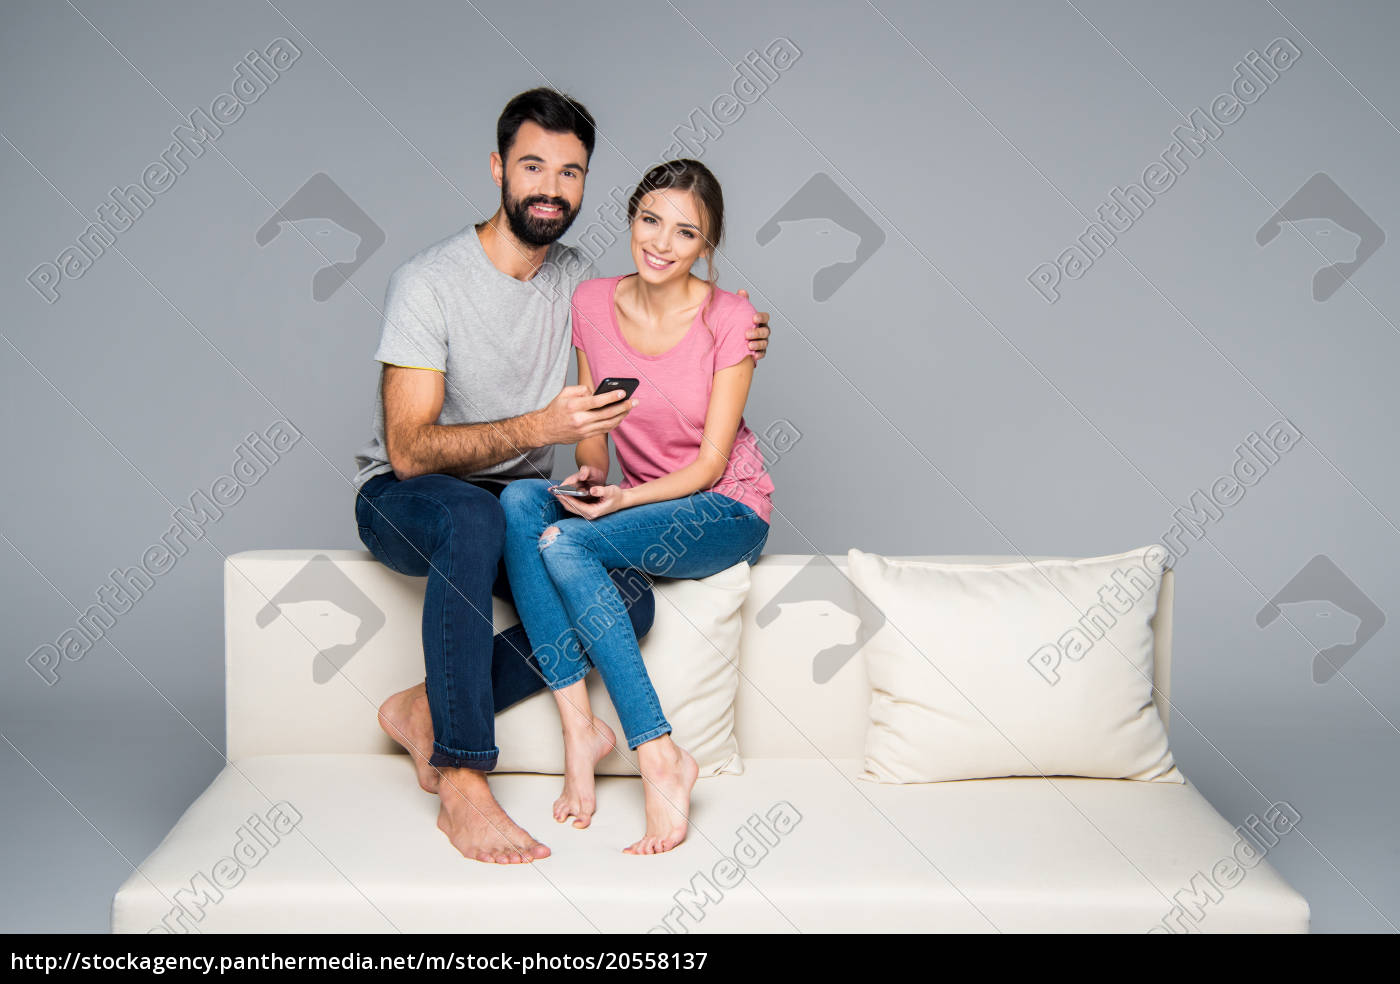 couple, using, smartphones - 20558137